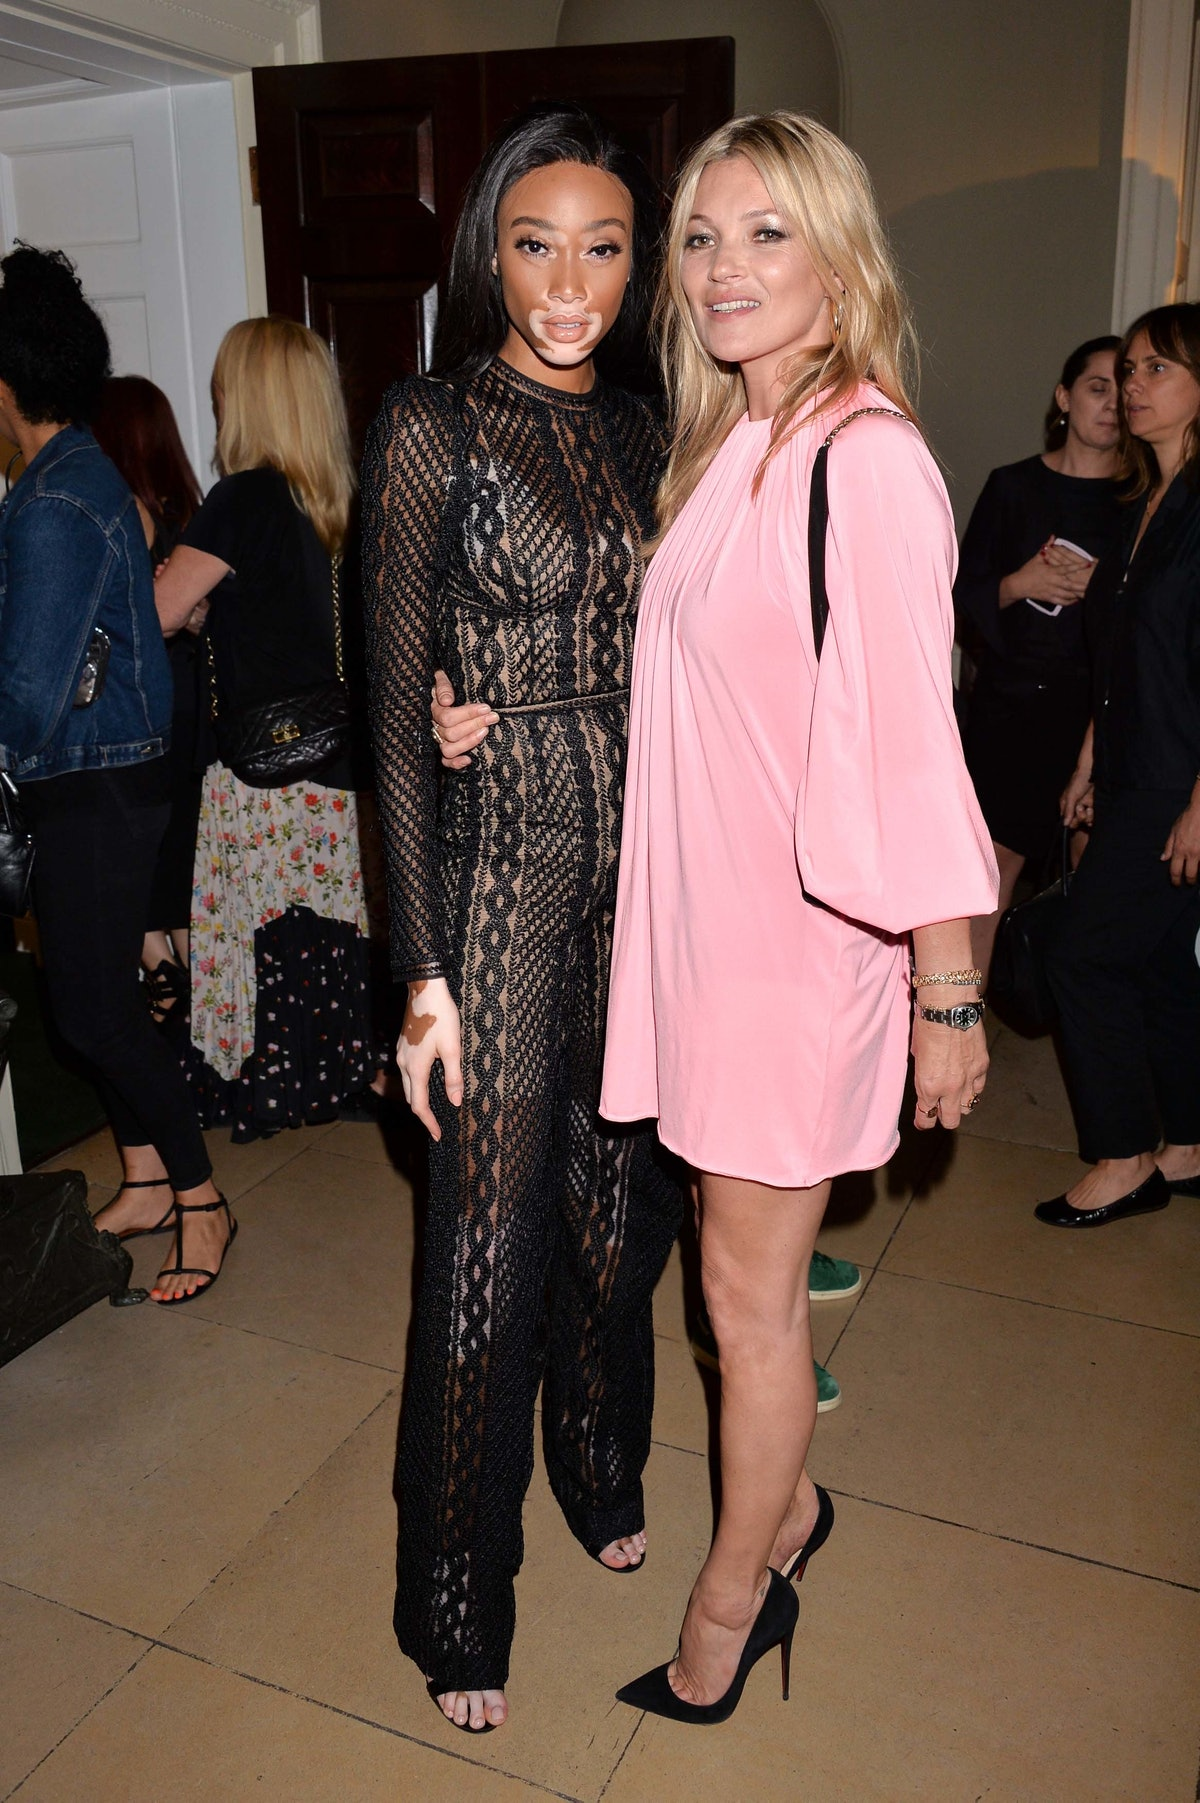 Kate Moss and Mario Sorrenti New OBSESSED Calvin Klein Fragrance Launch Party 22 Jun 2017